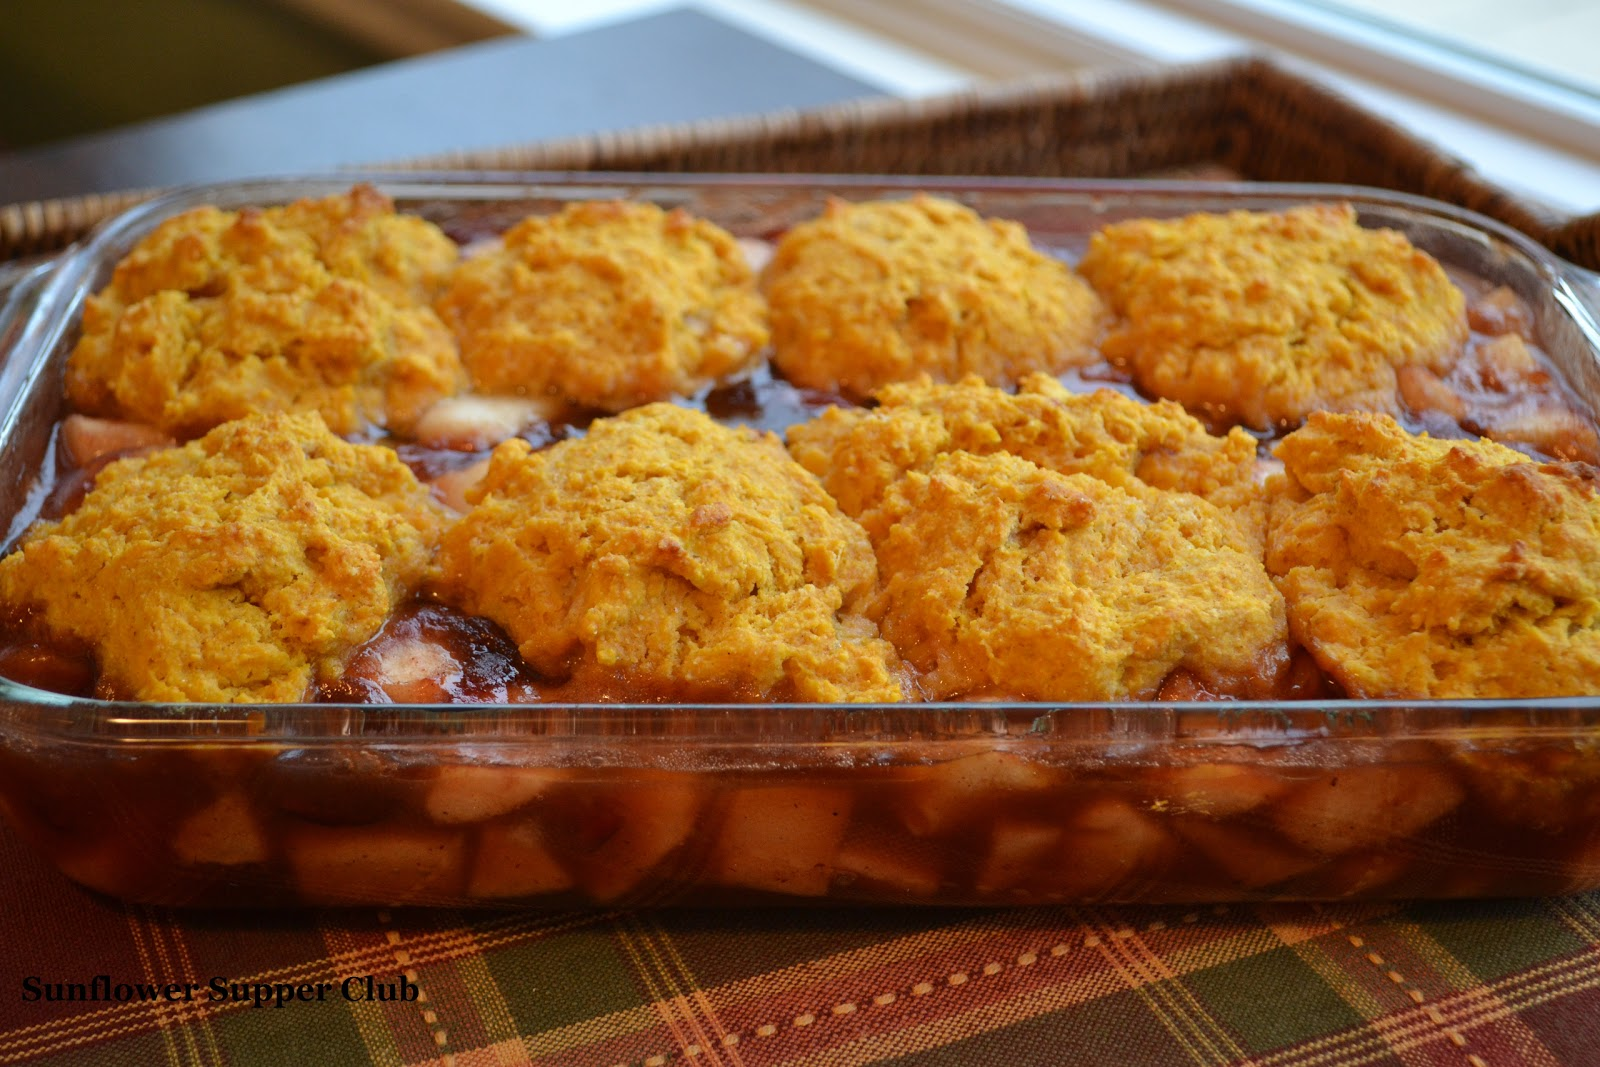 Sunflower Supper Club: Spiced Pear and Cranberry Cobbler